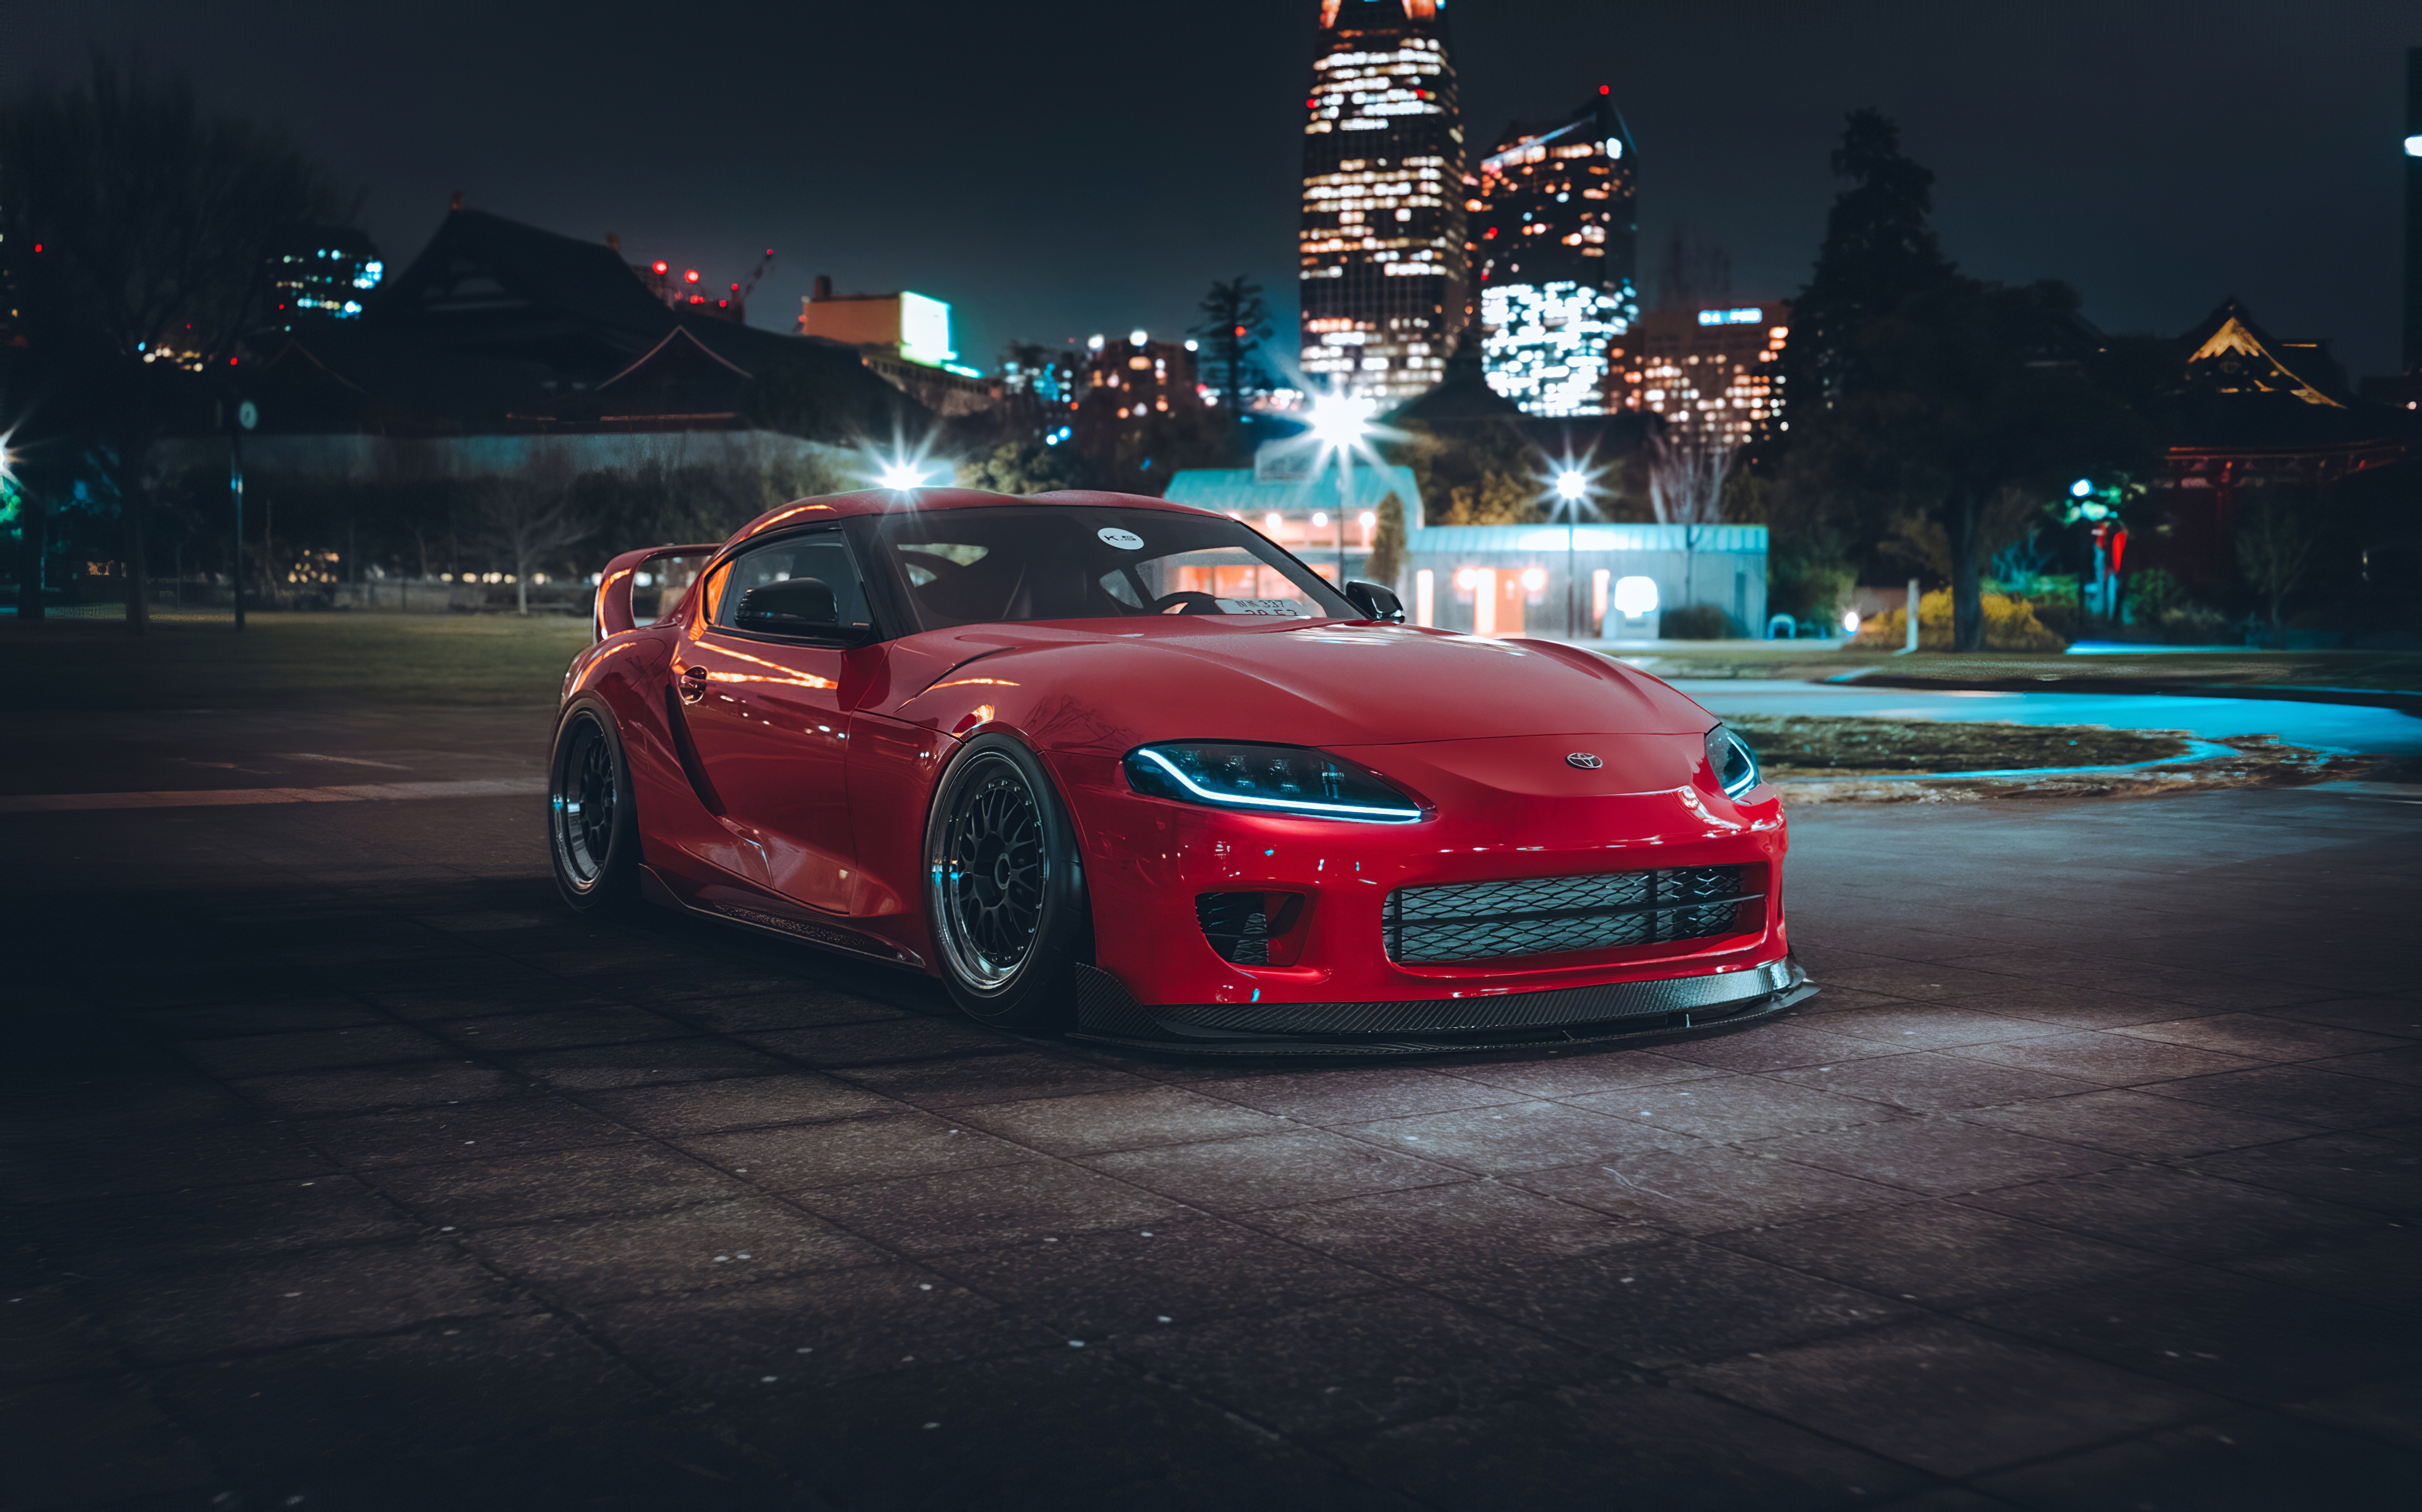 Toyota Supra 2020 Tuned 4k, HD Cars, 4k Wallpapers, Images ...